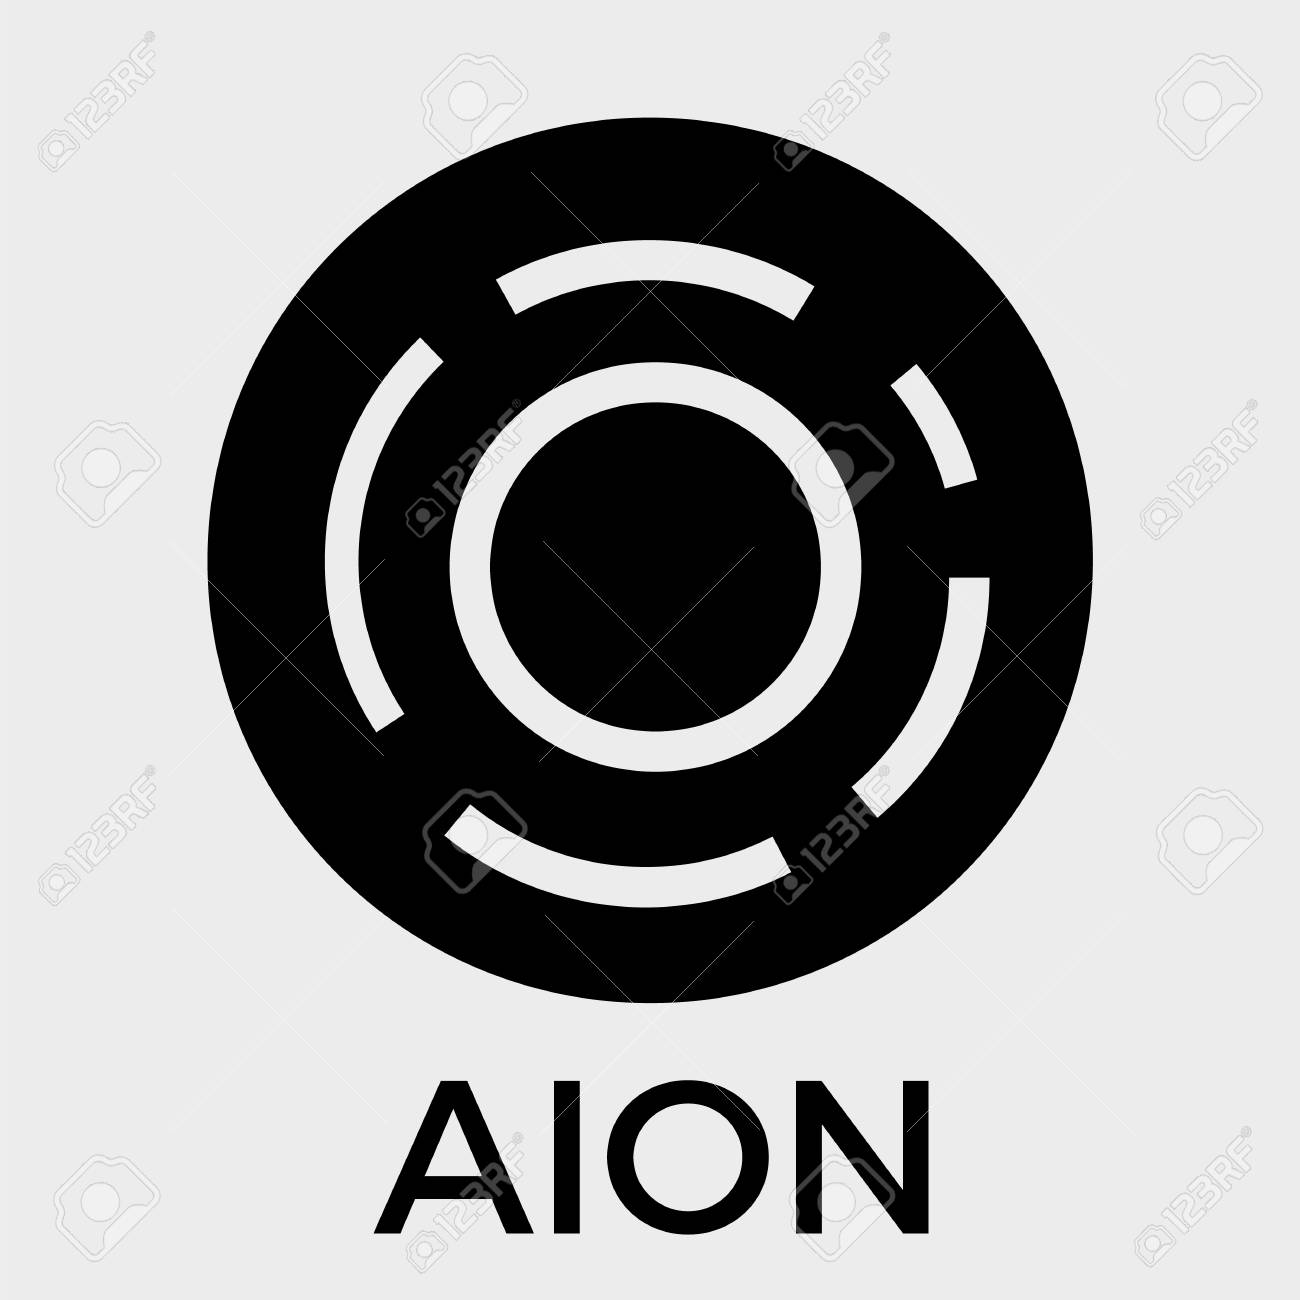 where to buy aion cryptocurrency